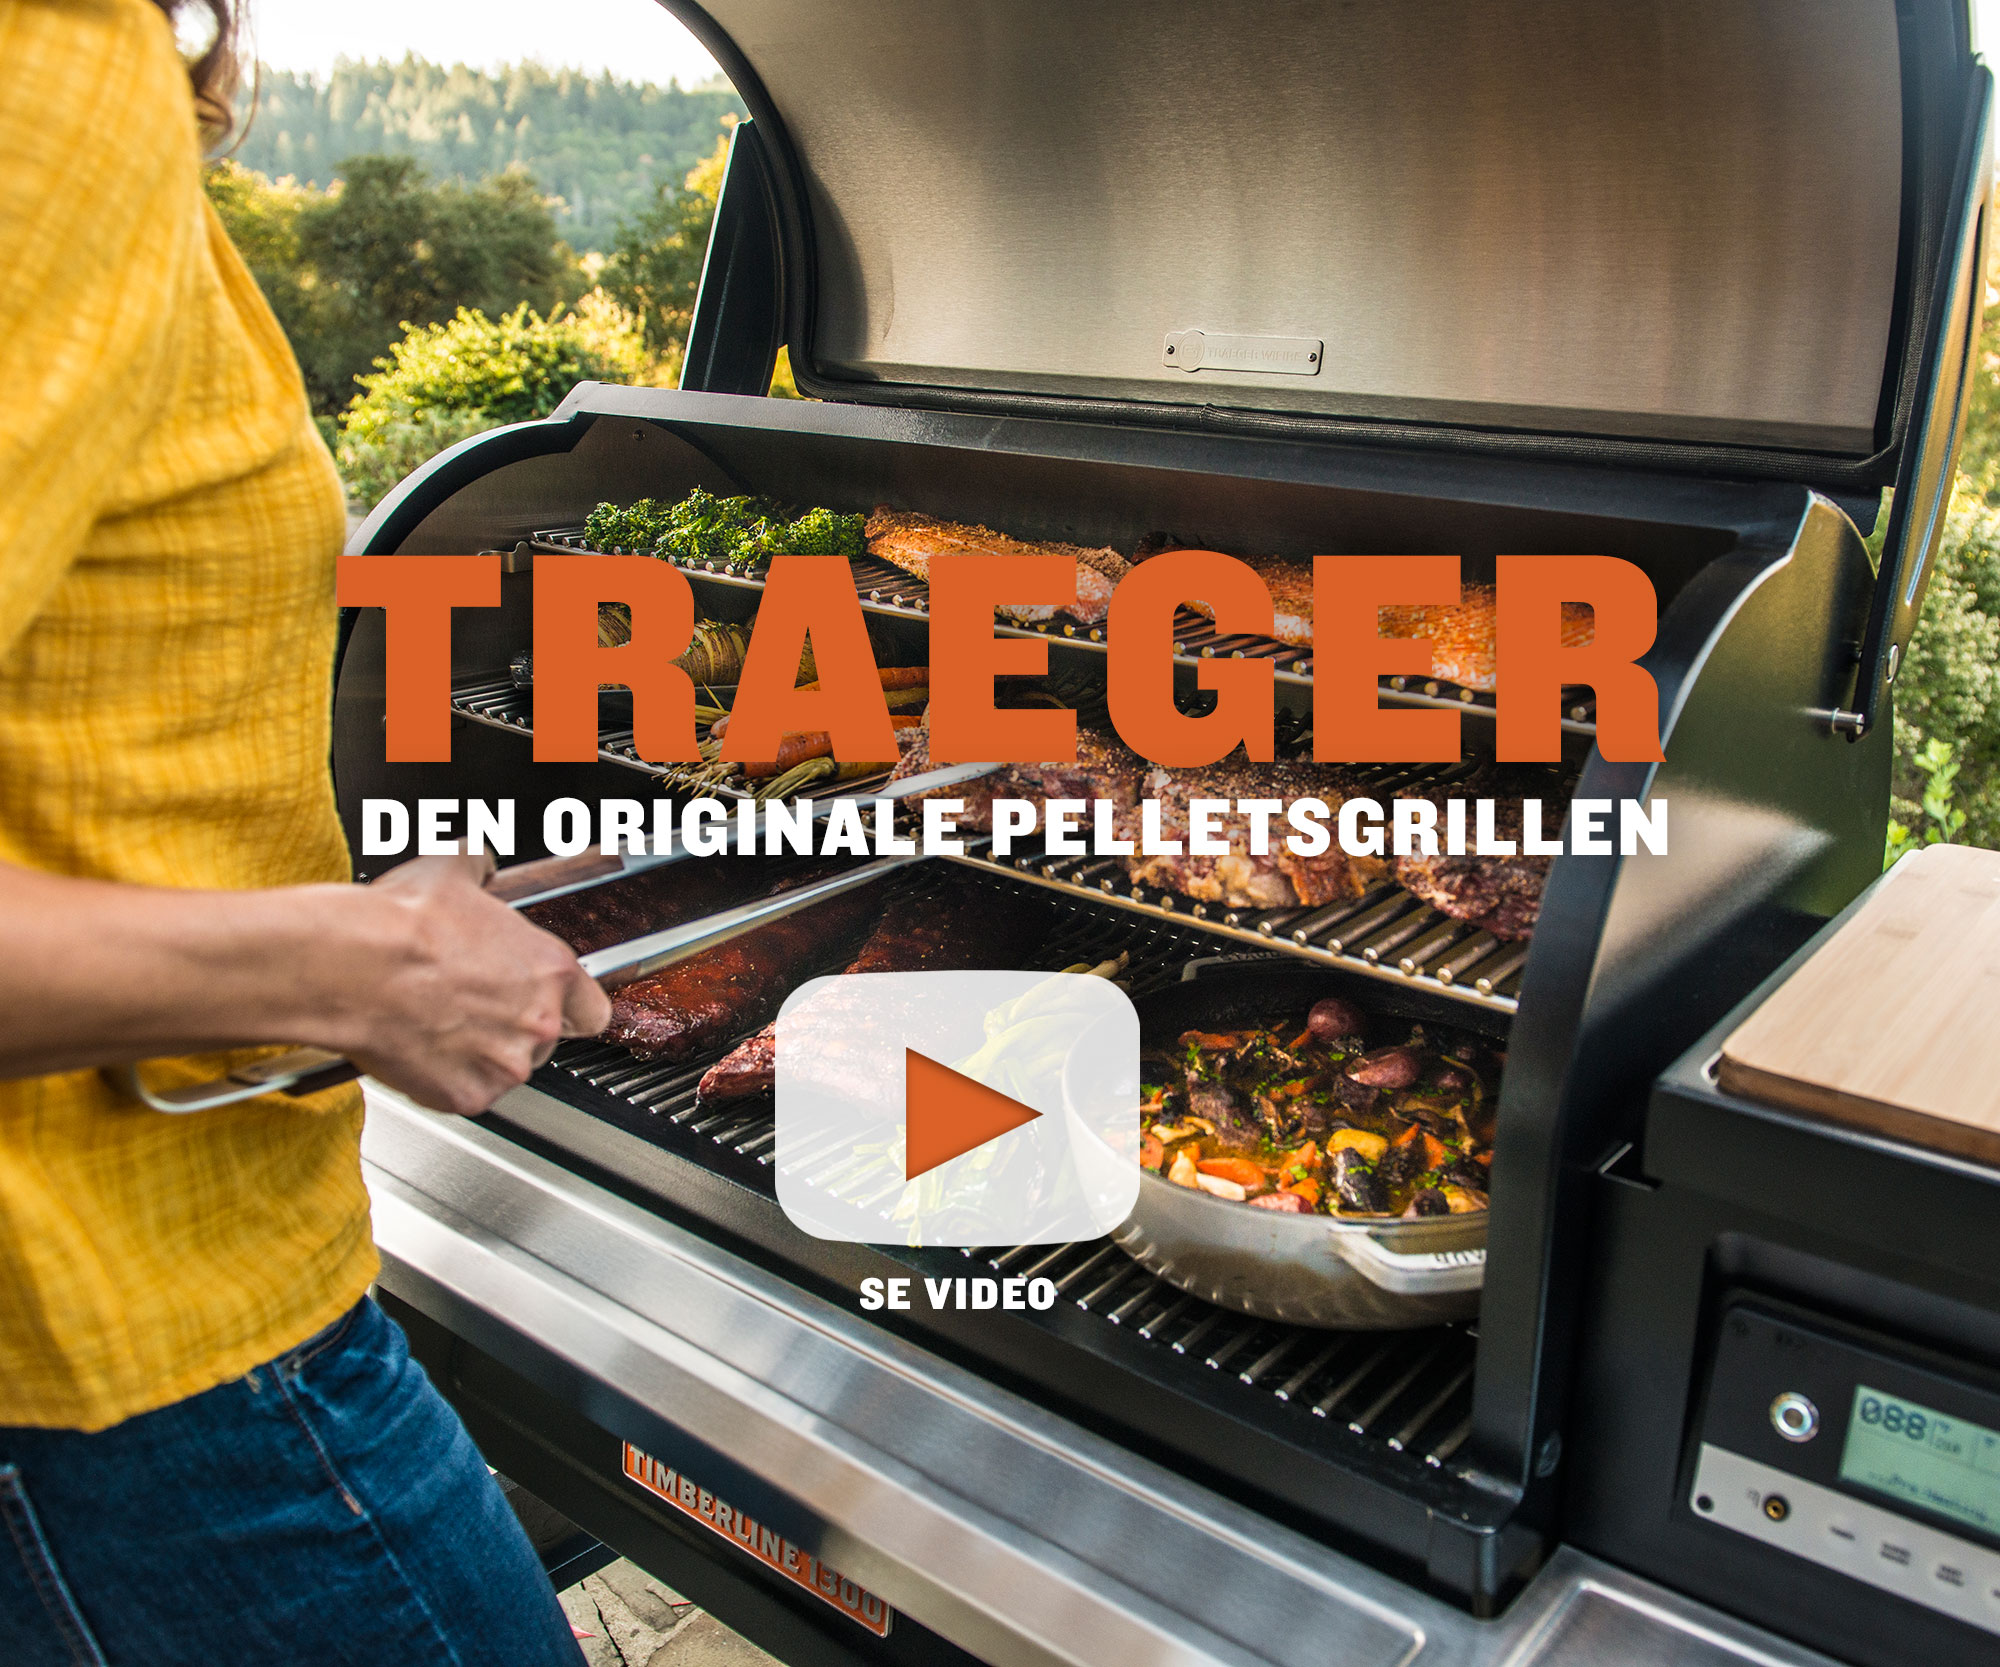 Se video - Traeger den originale 6 in 1 pelletsgrillen